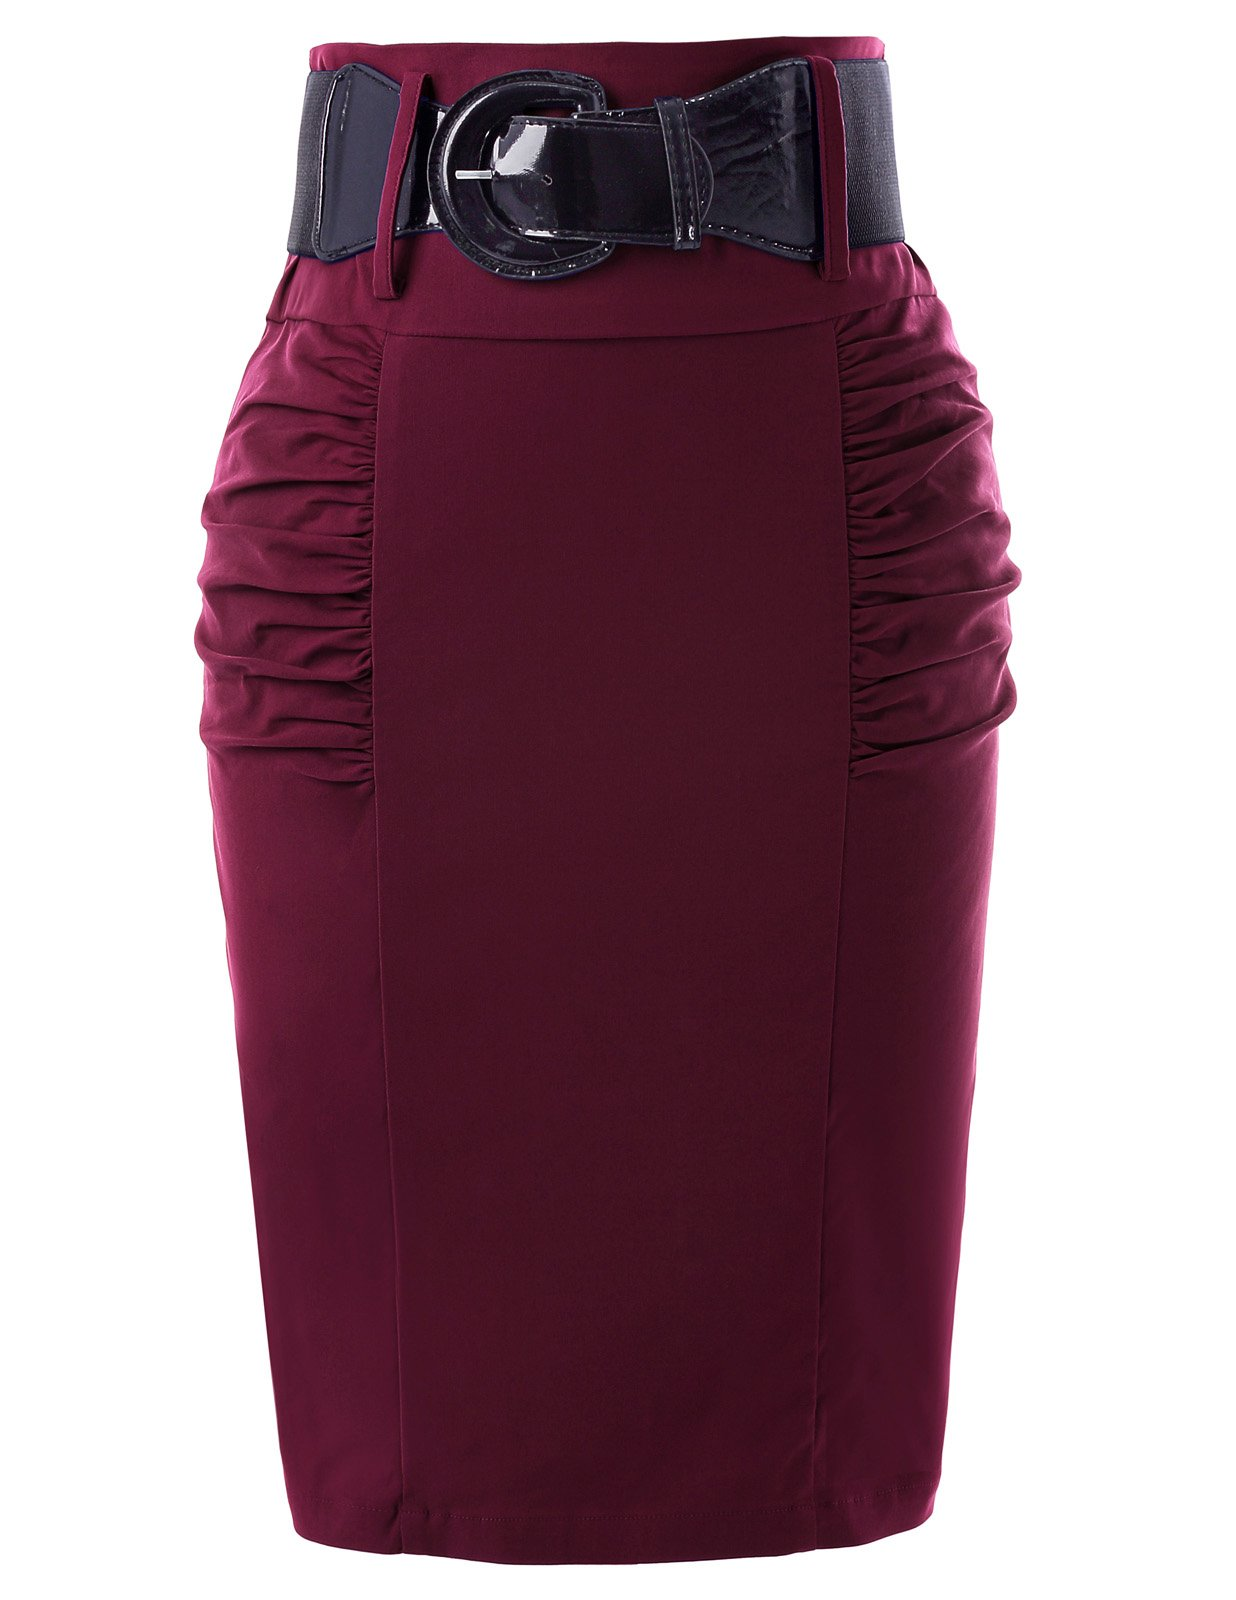 Belle Poque High Stretchy Vintage Skirts for Women Wine Red Size S KK271-7